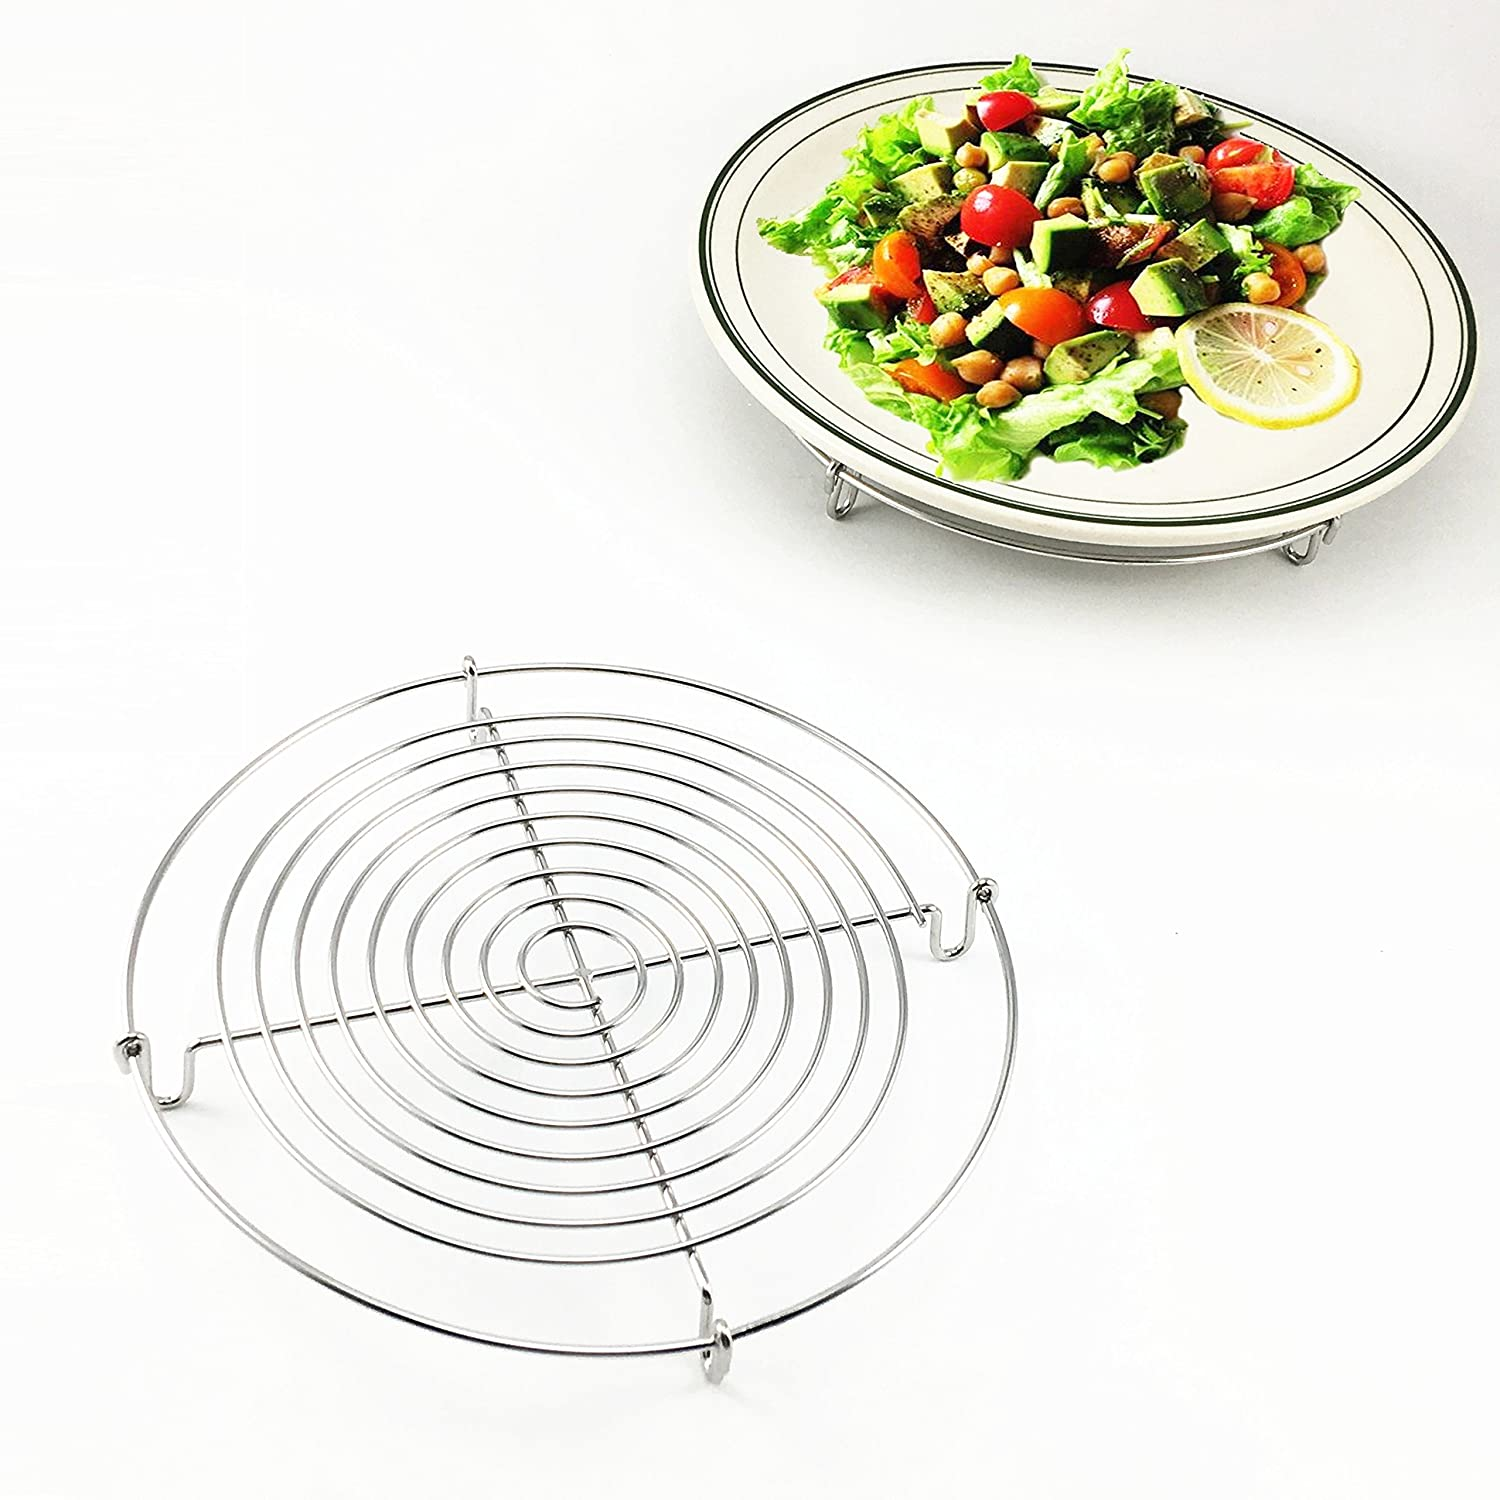 Stainless Steel Wire Cooling Rack Round Baking Tray For Cake Cookie Tarts Ovan Bread Pie Muffin Biscuits Cupcake,Kitchen Cooling Grid Holder Stand (Dia.12.6 Inch)